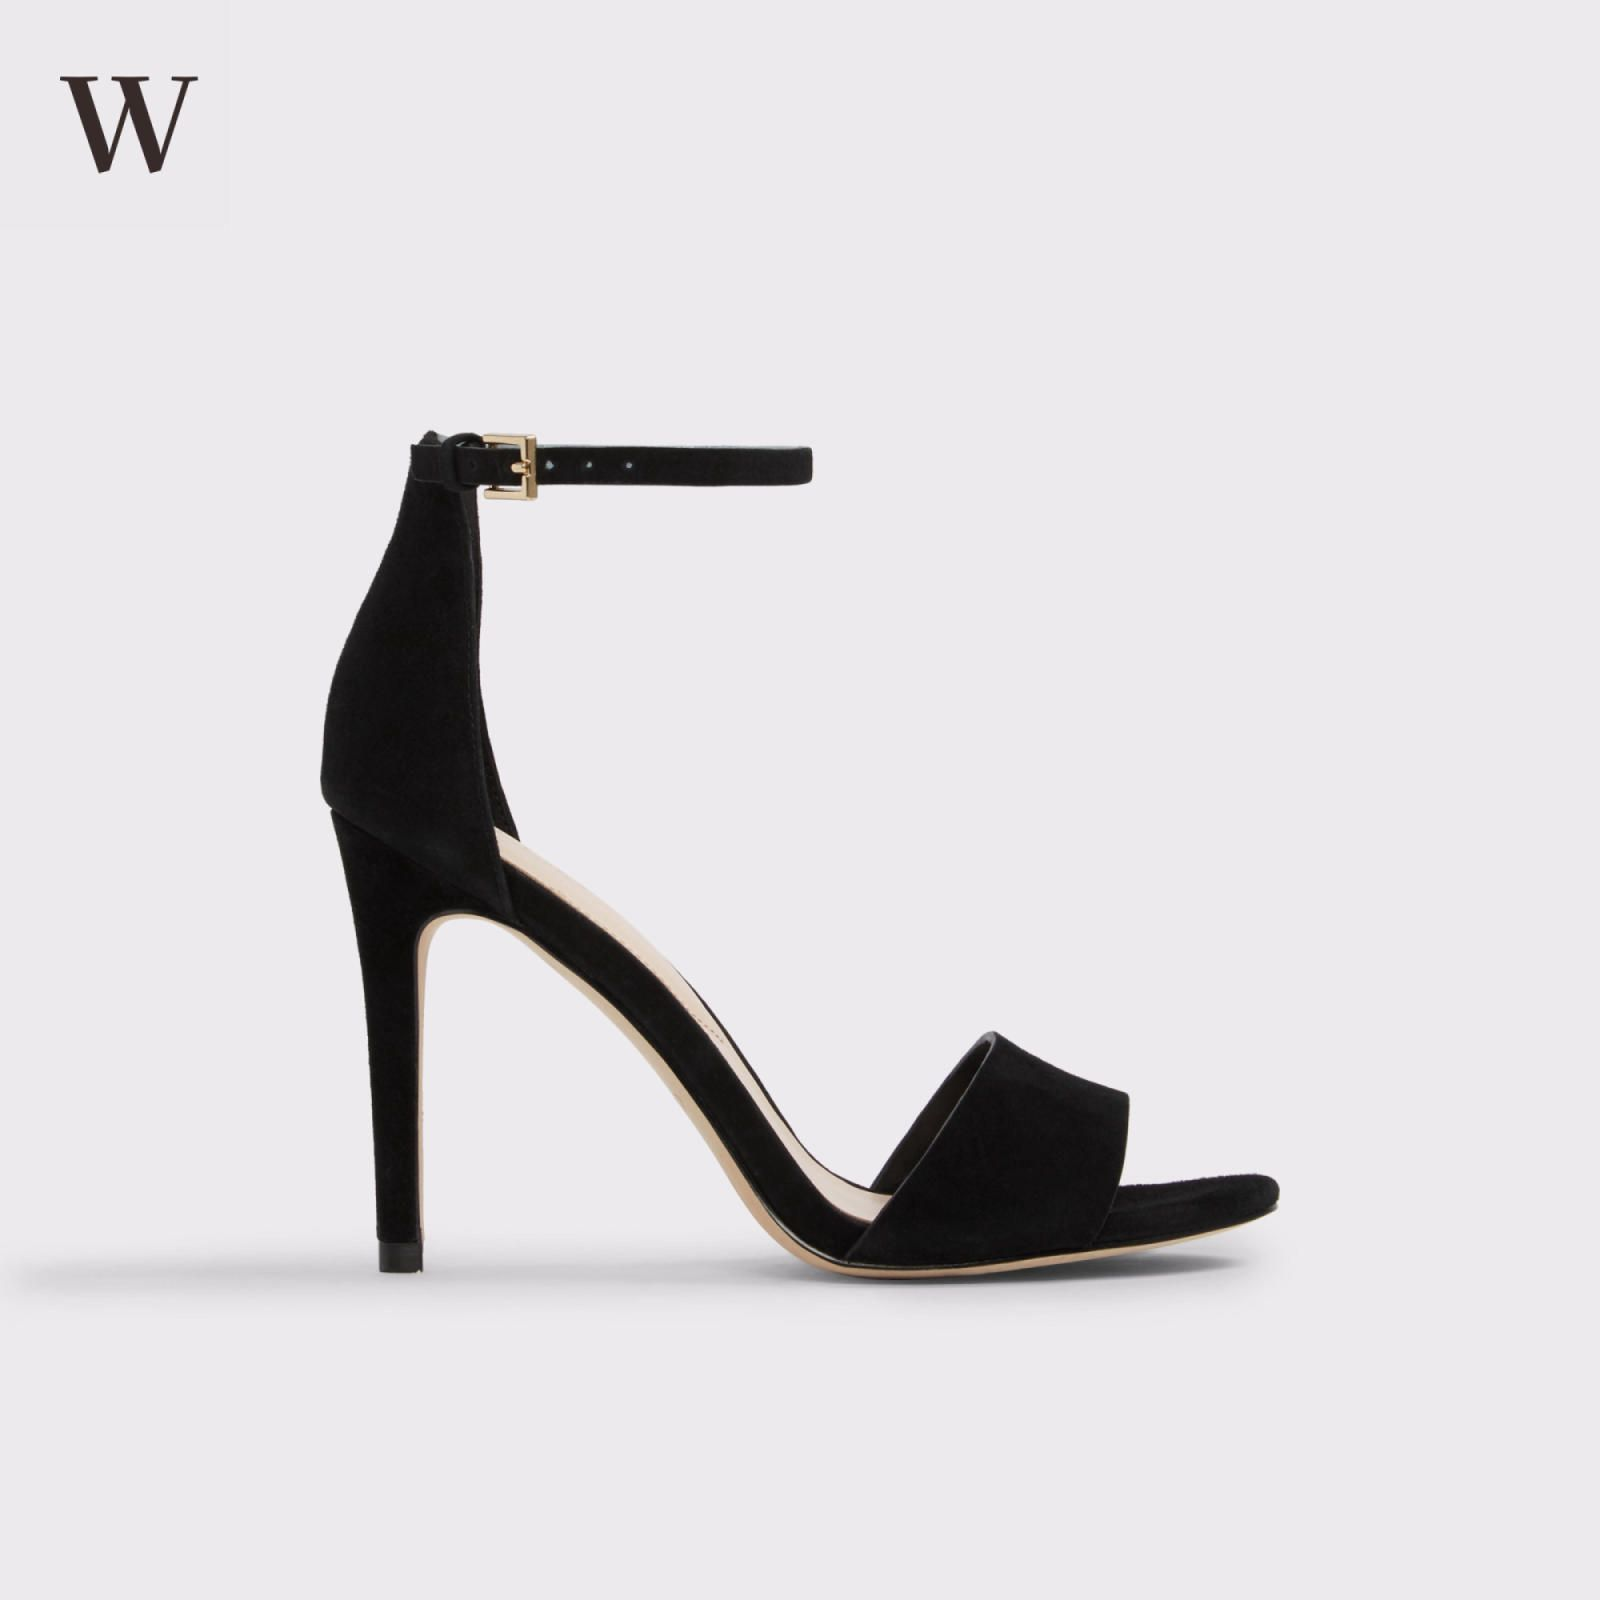 f421bf7c674 Fiollaw Simple Sandals, Womens Shoes Wedges, Toe Shape, Ankle Straps, Ankle  Strap